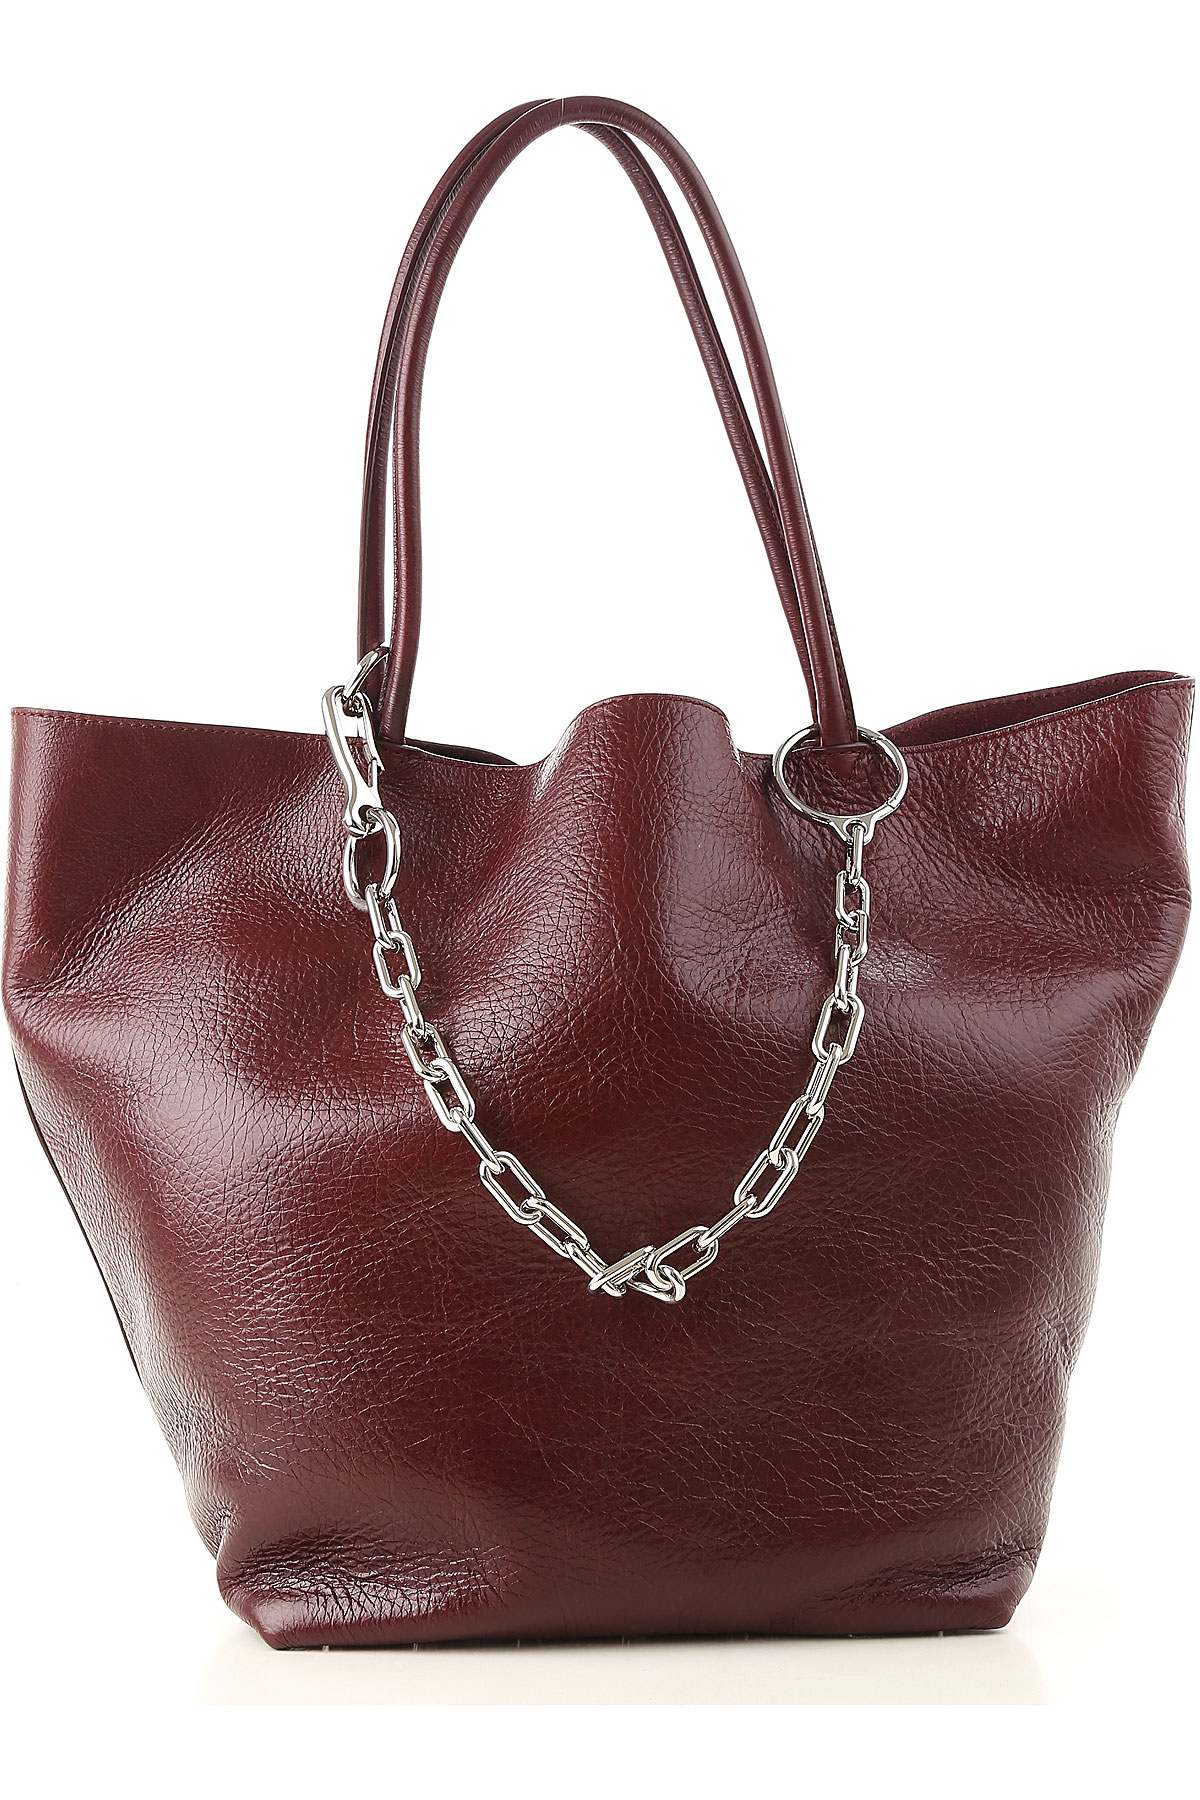 Image of Alexander Wang Tote Bag, Bordeaux, Leather, 2017